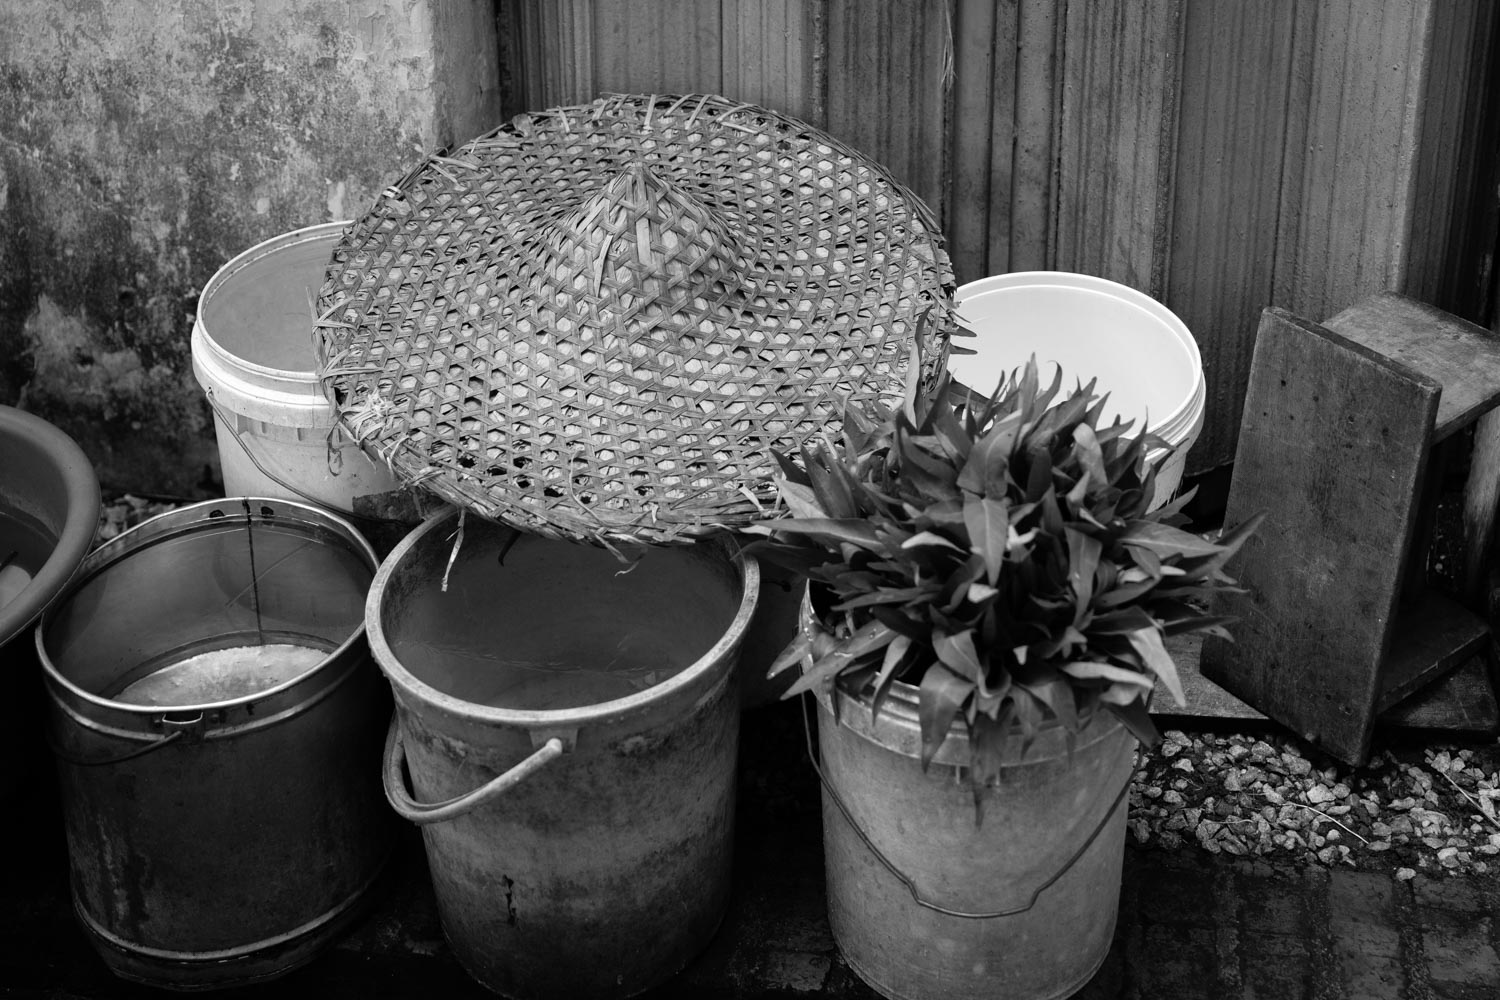 Collection of buckets and hat - Ipoh